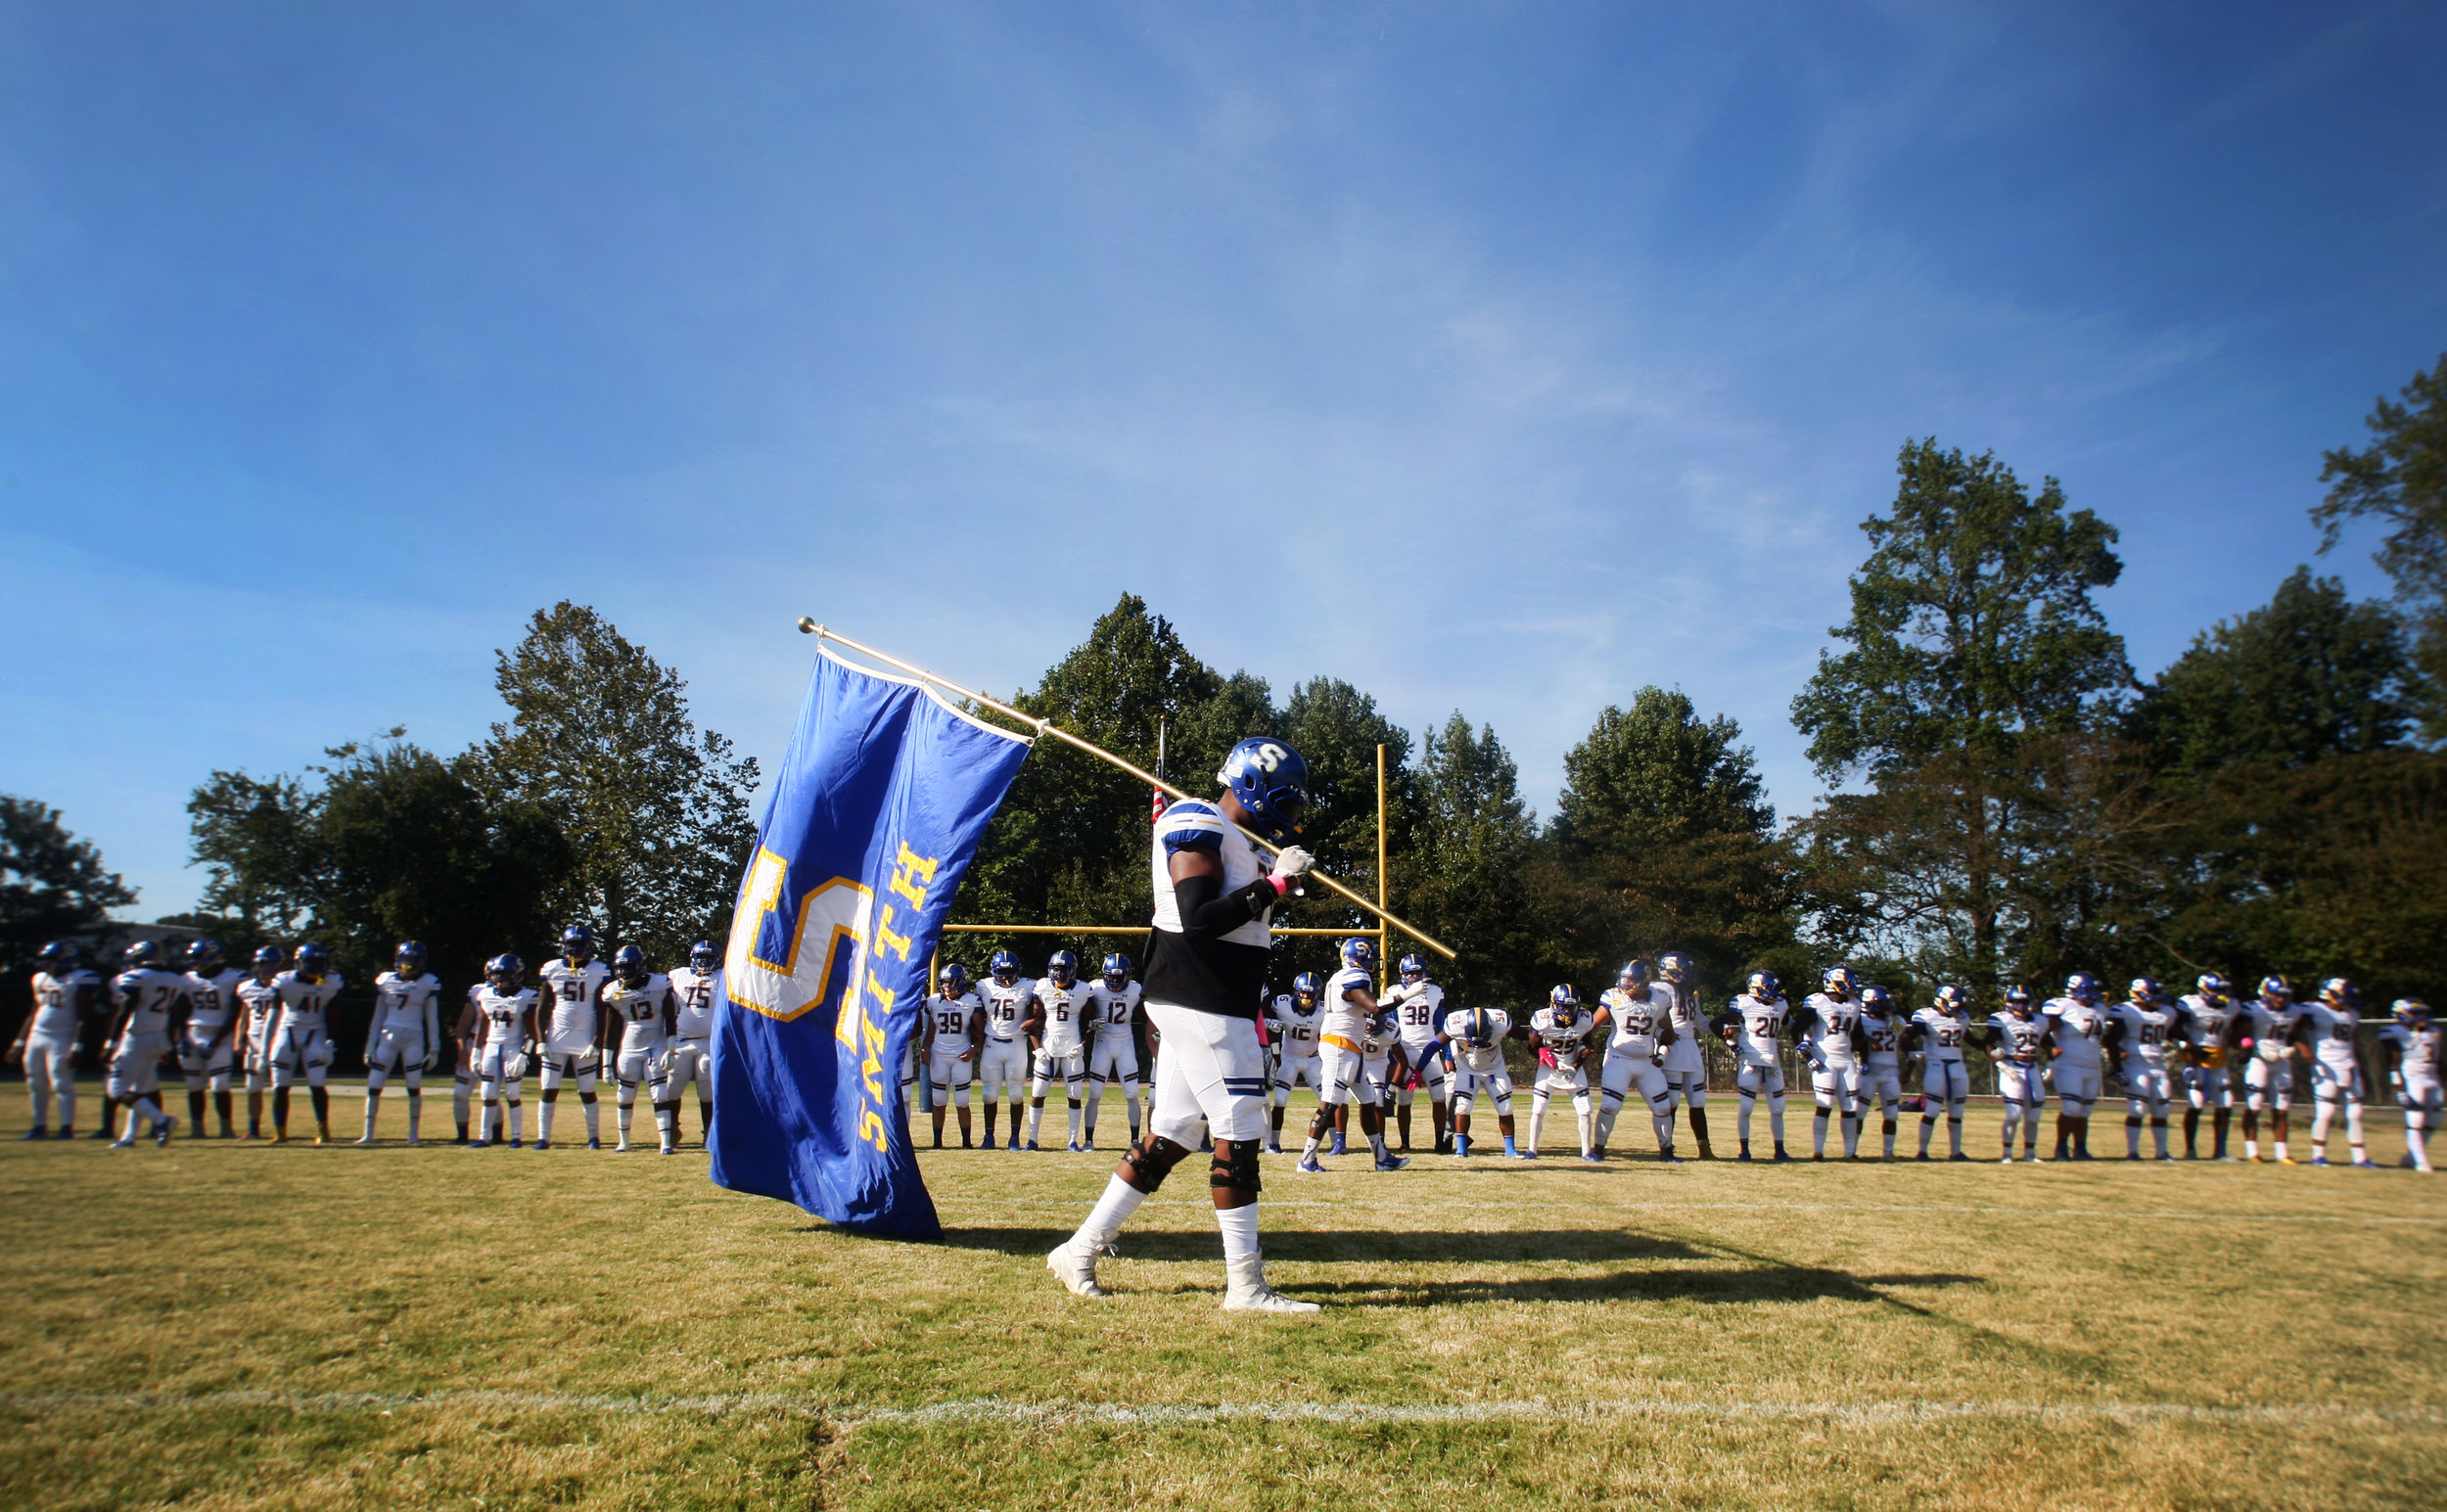 The Oscar Smith football team readies to take the field prior to the start of their 35-14 win over Indian River, Saturday, Oct. 21, 2017 at Indian River High School in Chesapeake.